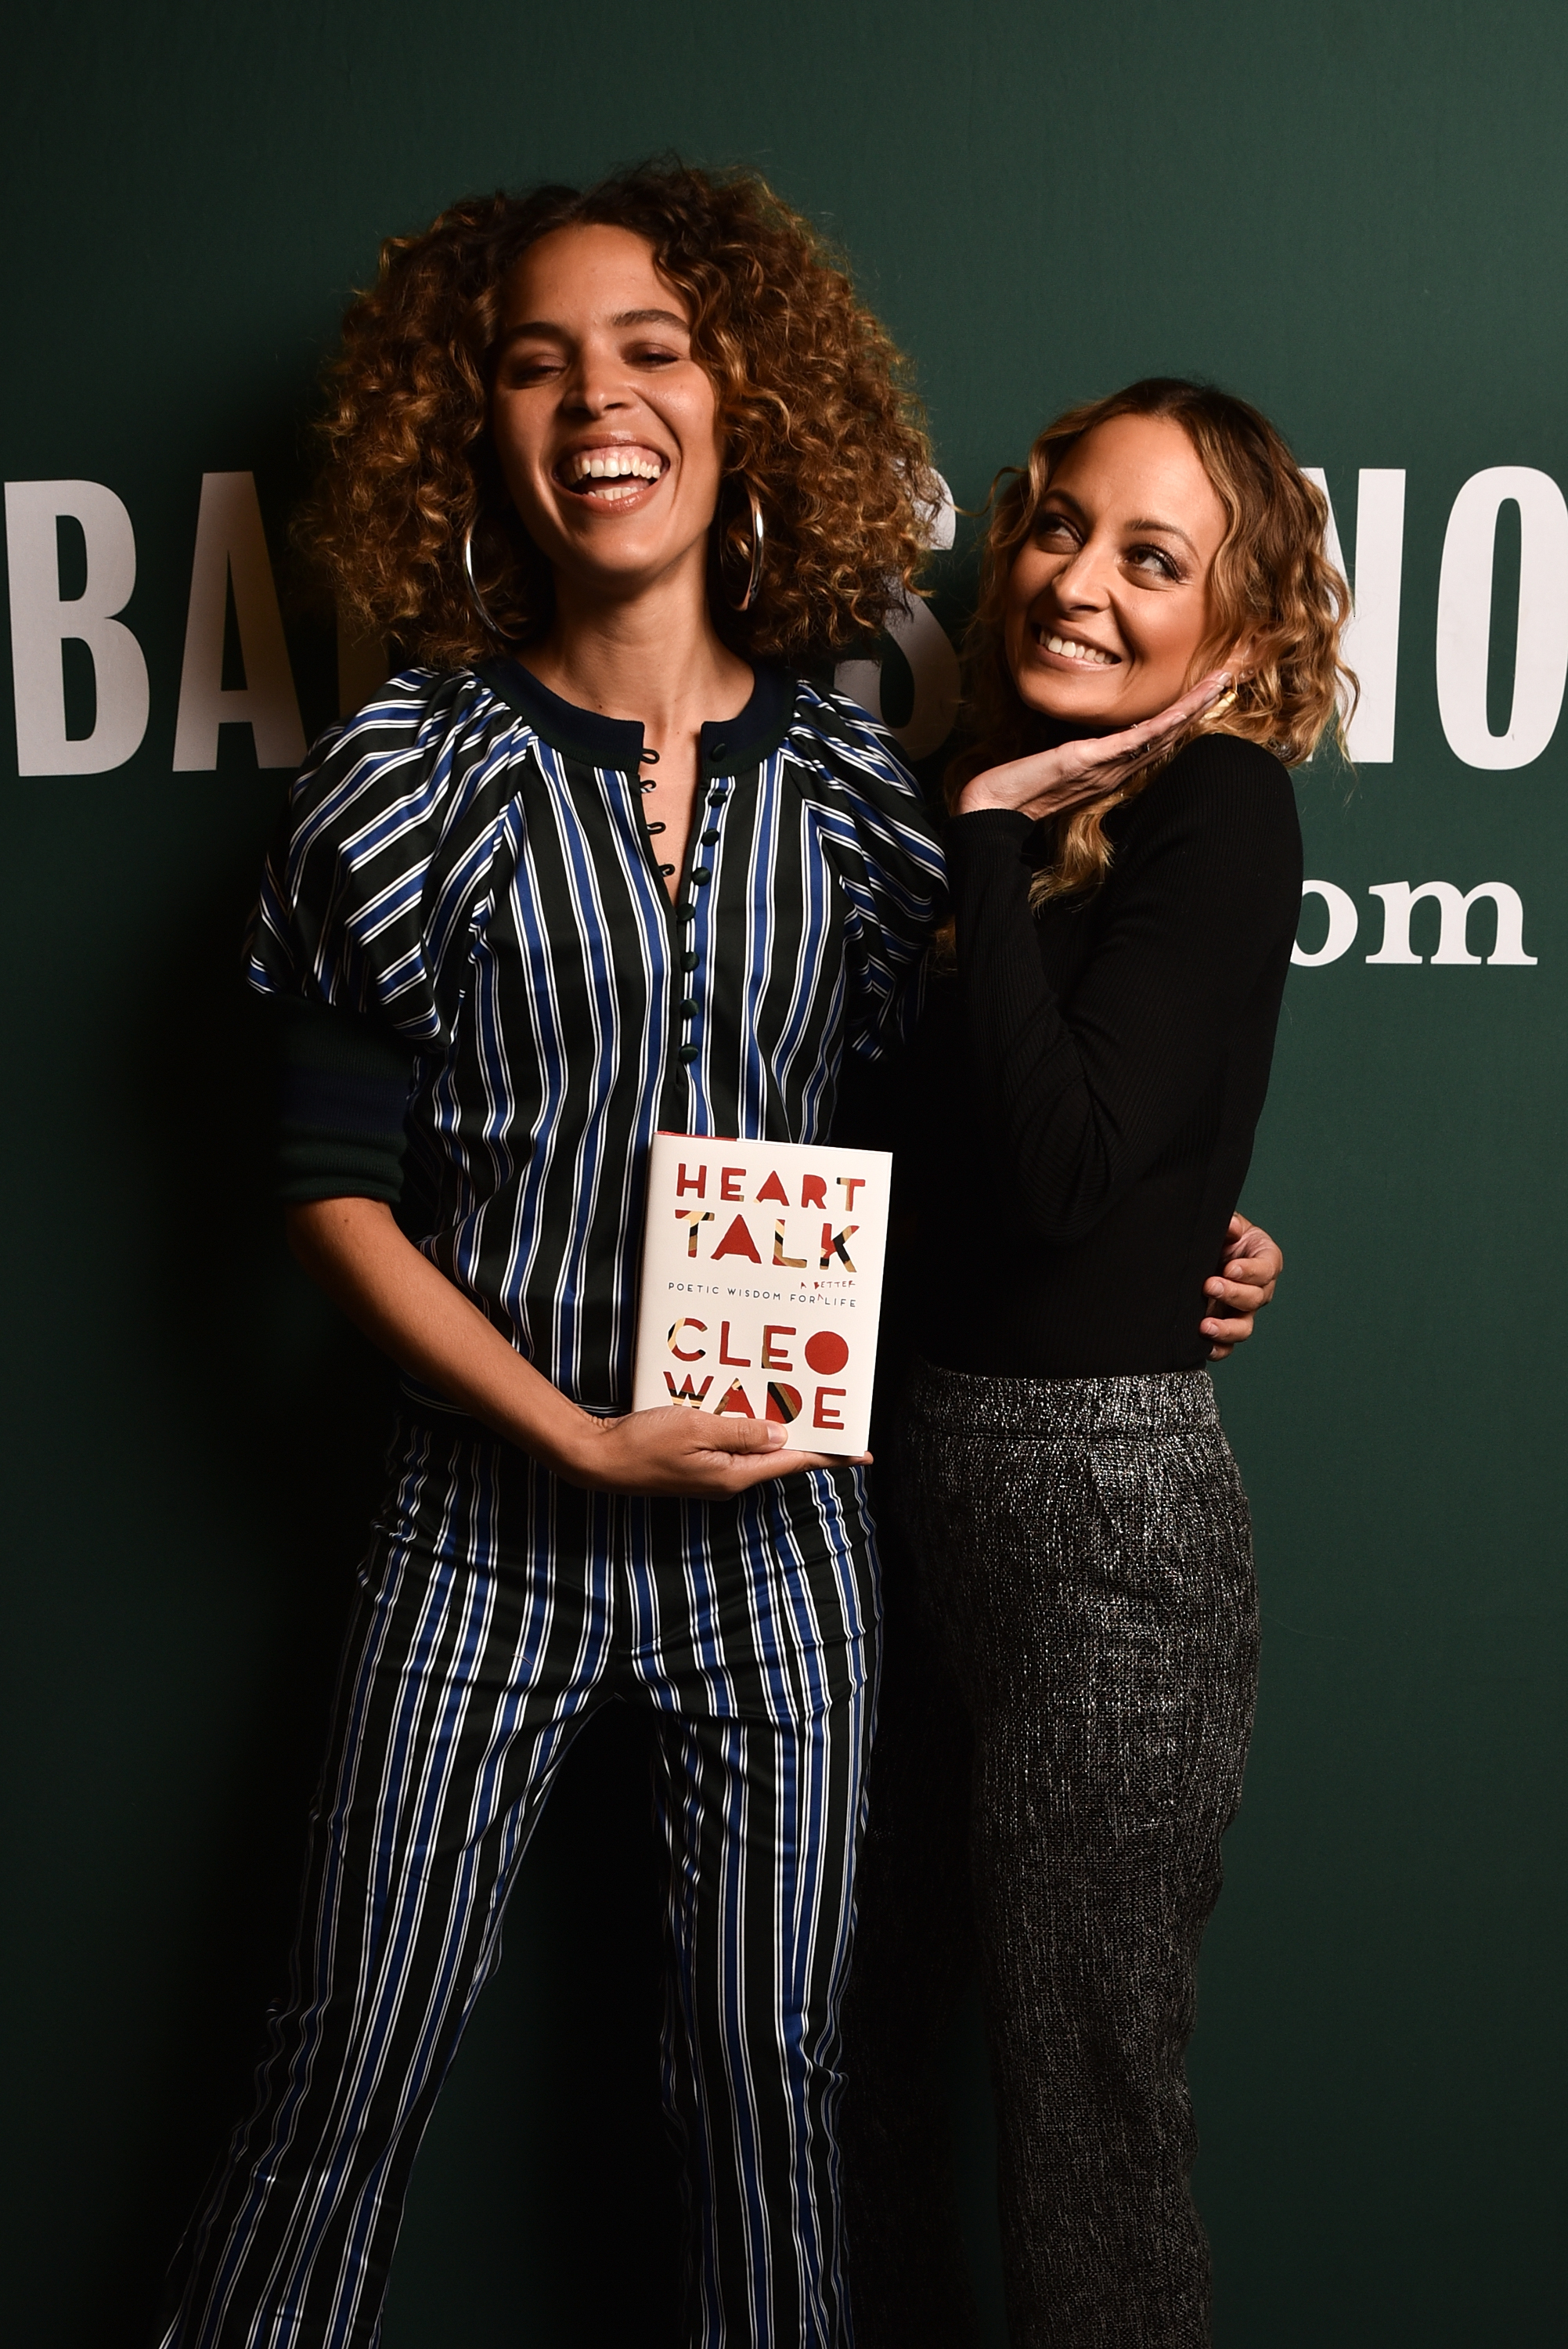 """Poet Cleo Wade and fashion designer Nicole Richie pose for portraits before the signing and discussion of their new book """"Heart Talk"""" at Barnes & Noble at The Grove in Los Angeles on March 14, 2018."""